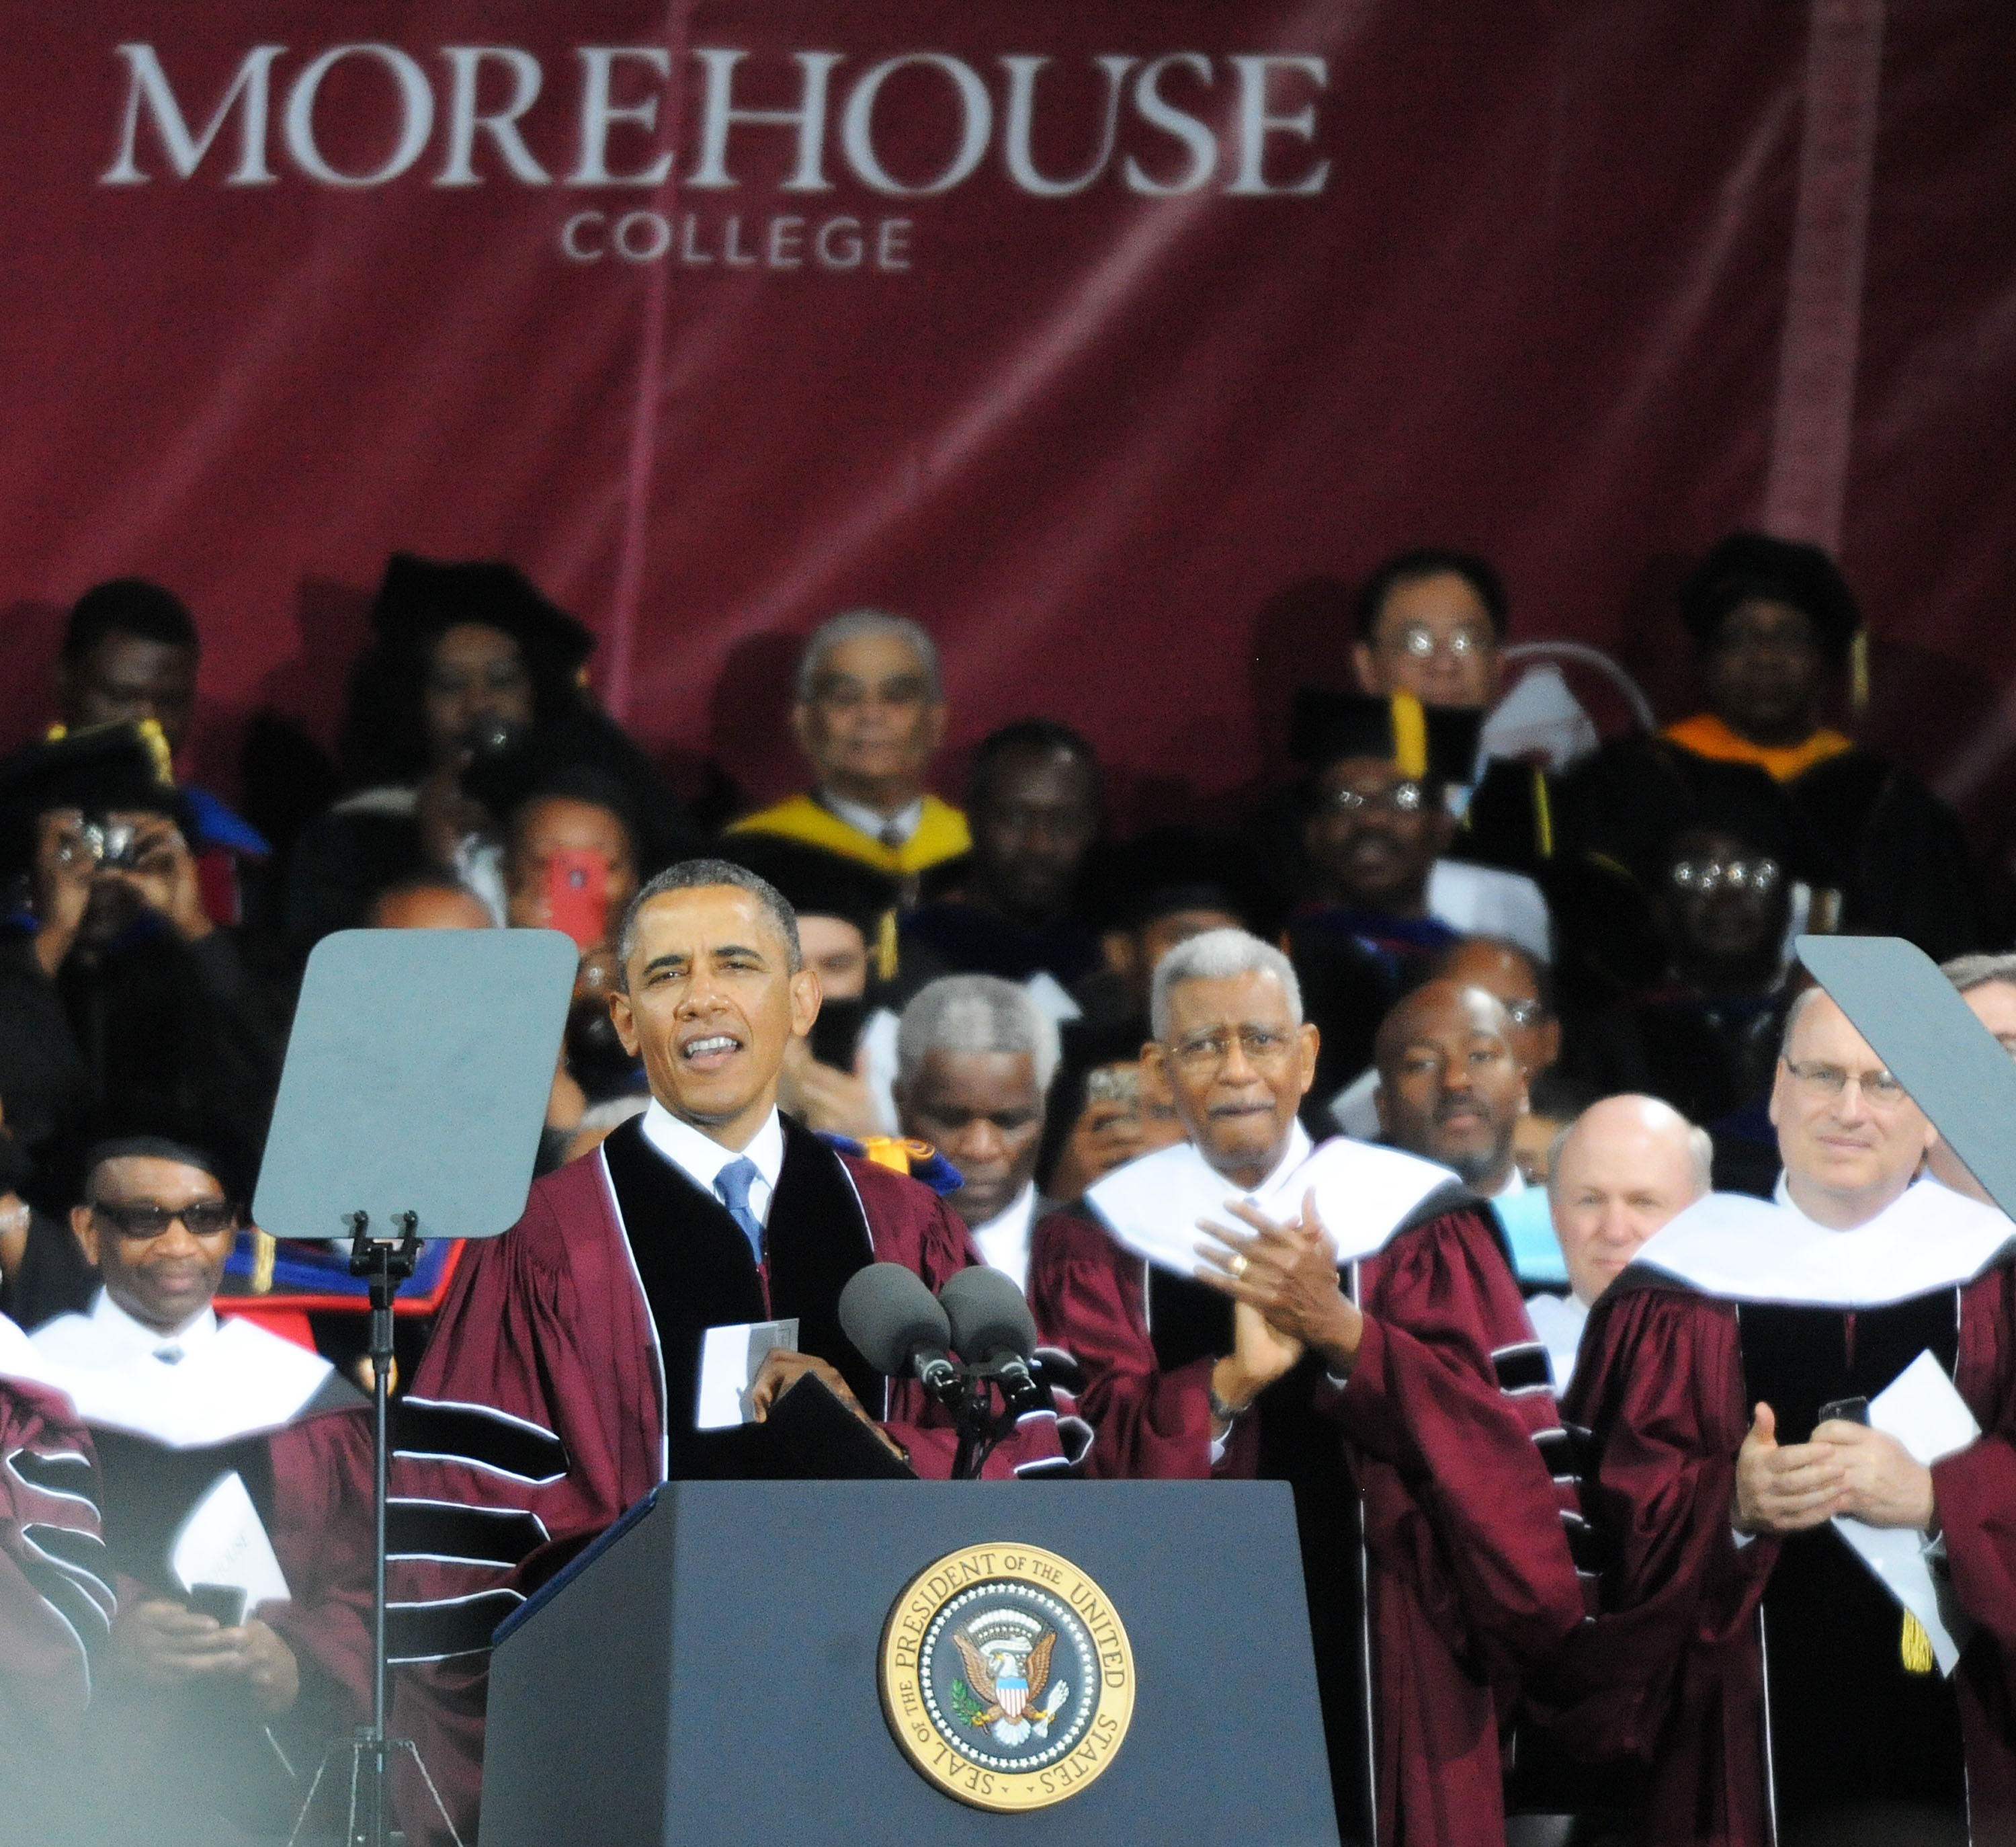 President Obama delivers remarks during the Morehouse College commencement on May 19, 2013 in Atlanta, Georgia.